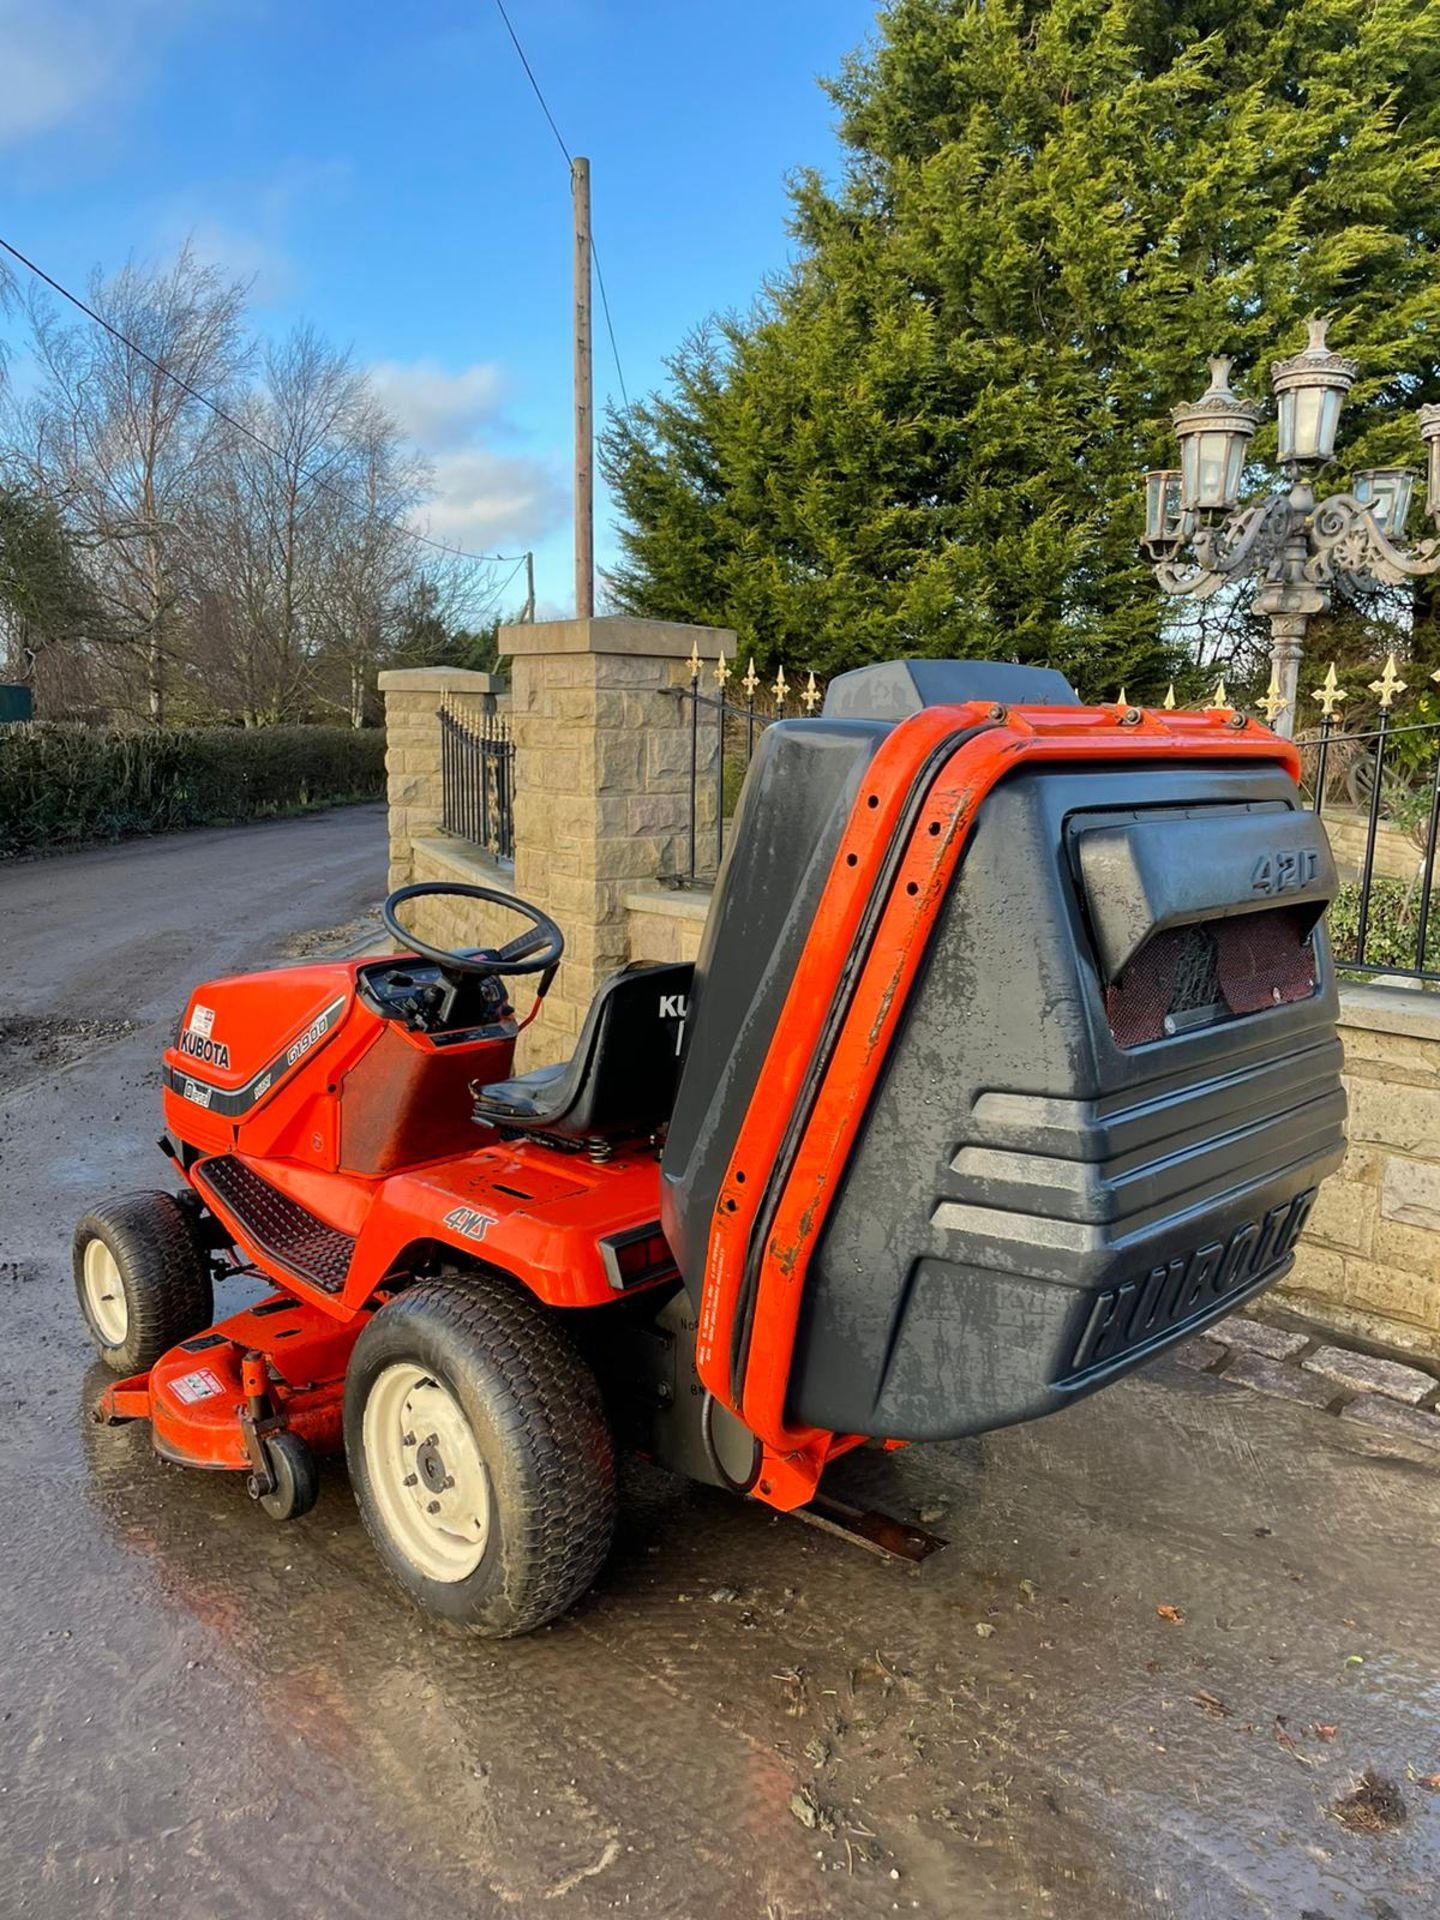 KUBOTA G1900 HST 4WS RIDE ON MOWER WITH COLLECTOR, RUNS, DRIVES AND CUTS, DIESEL ENGINE *NO VAT* - Image 6 of 7